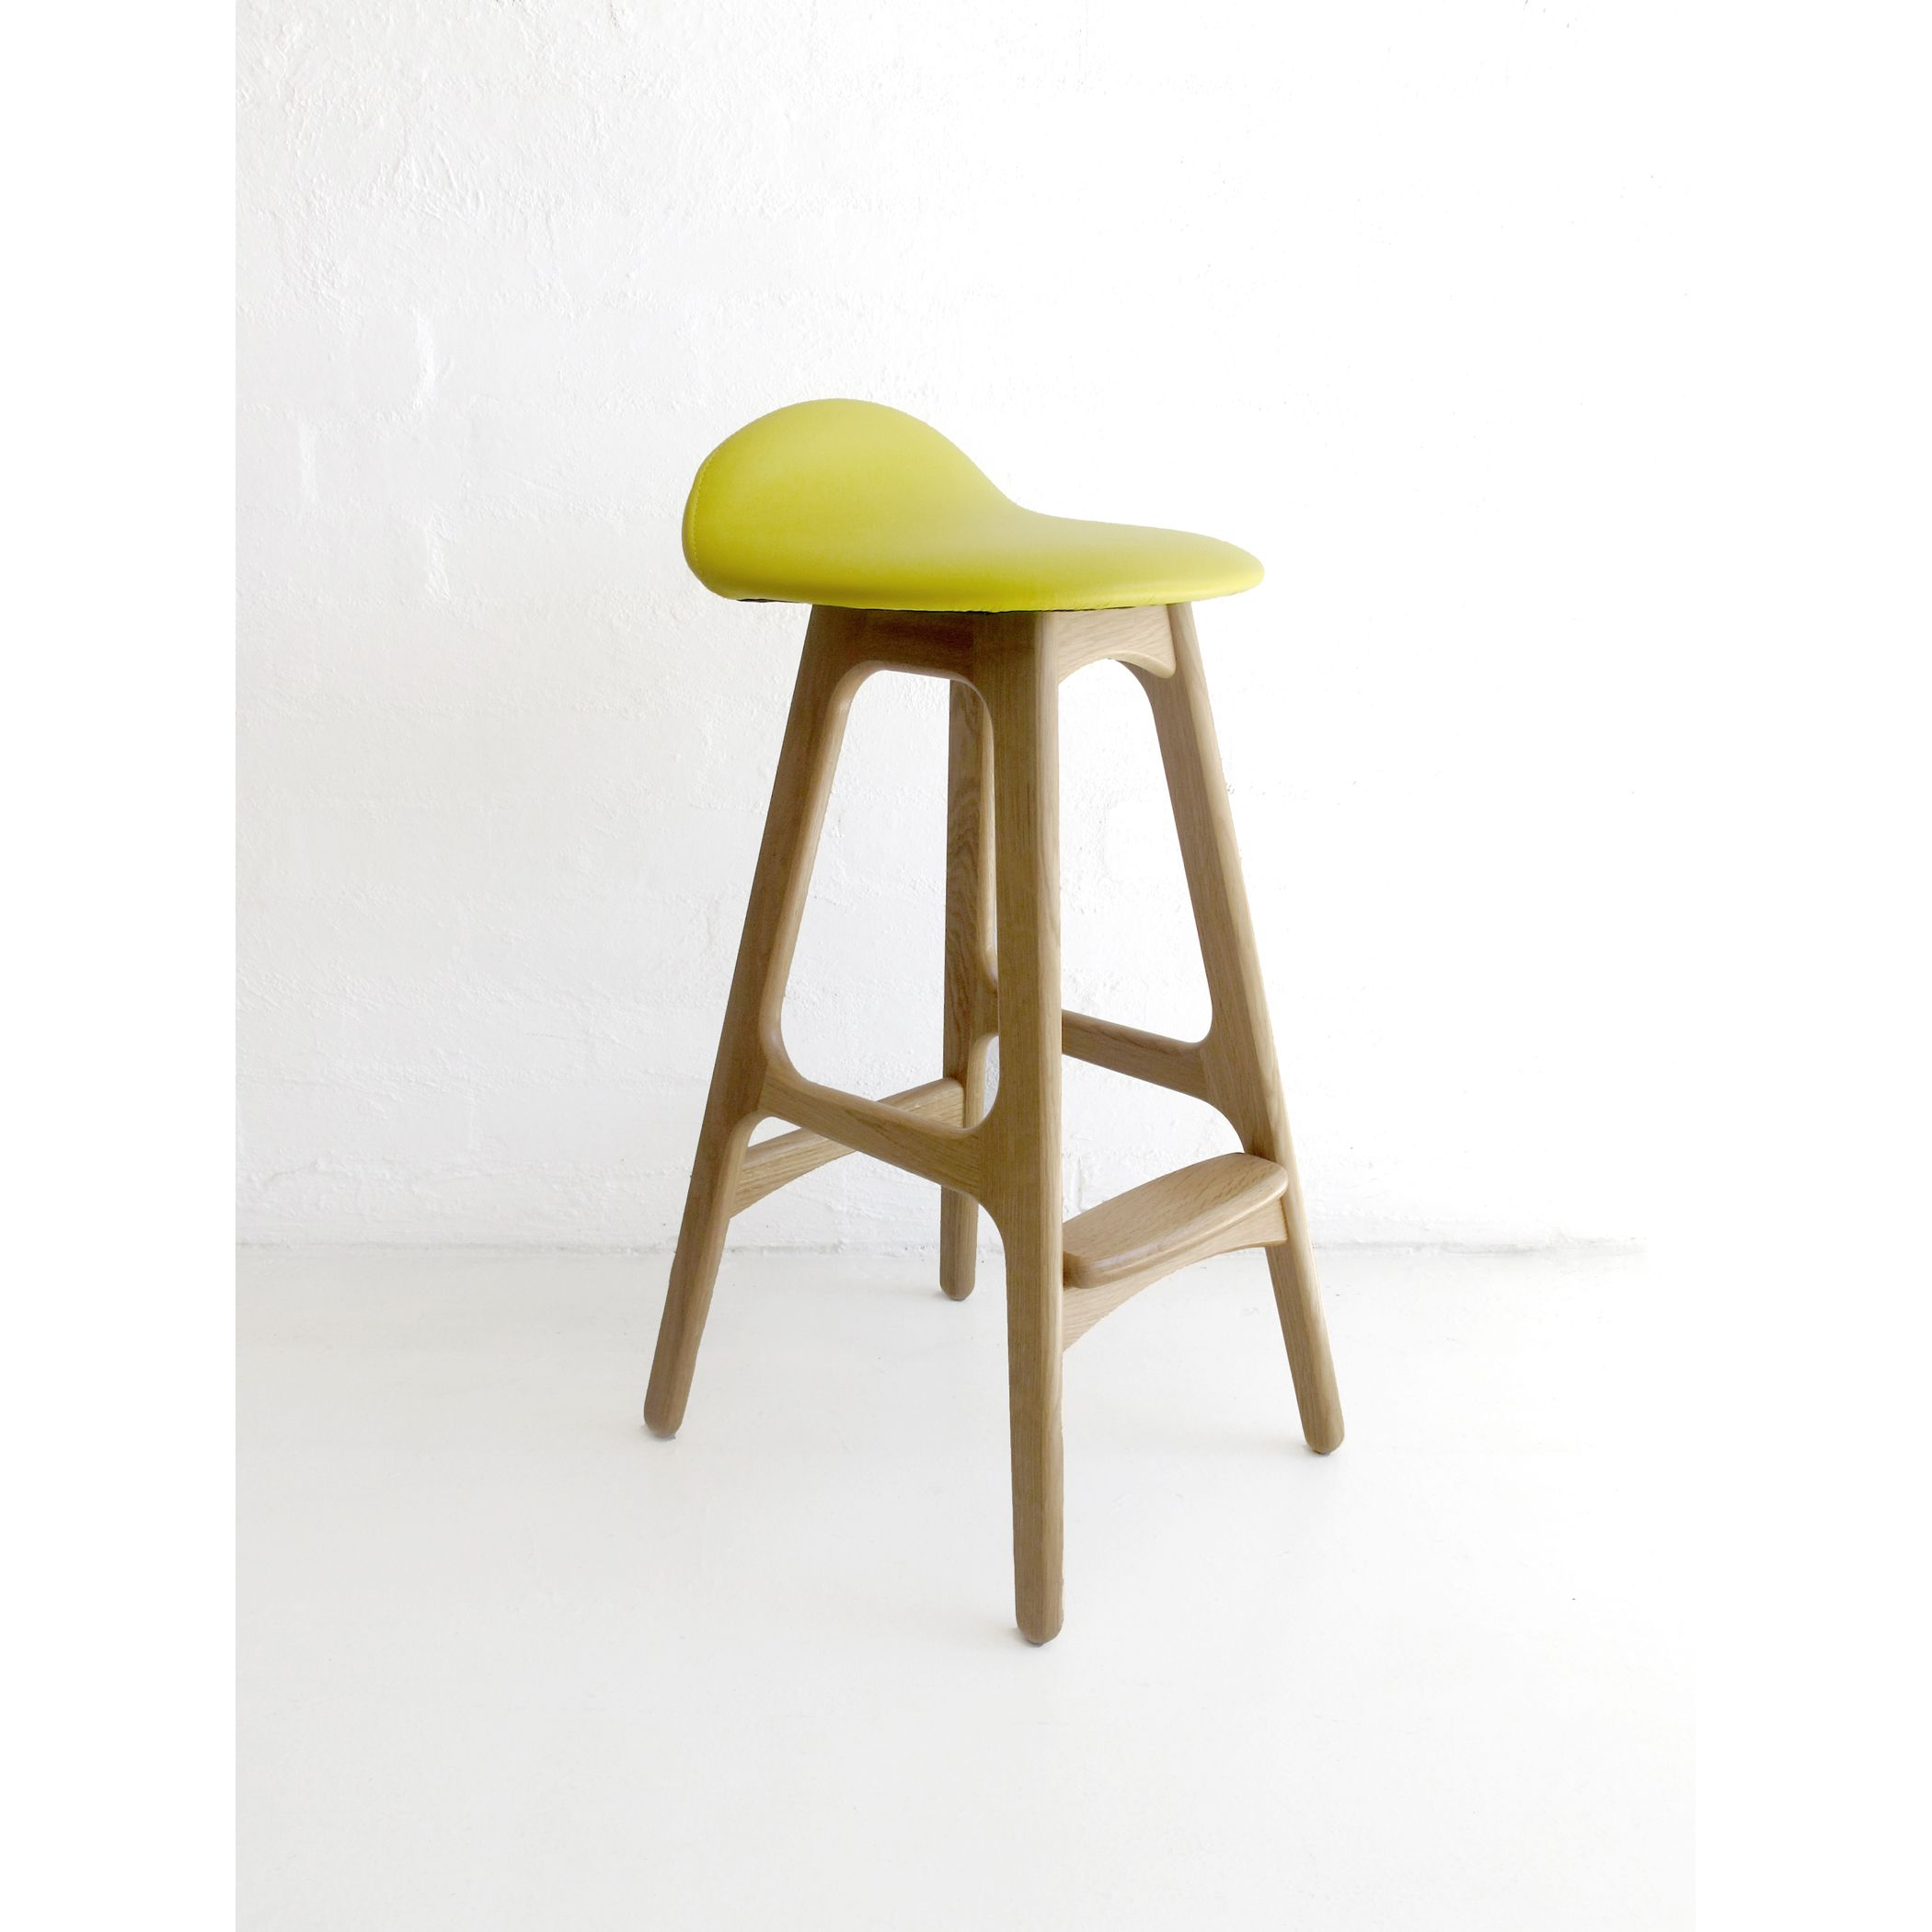 Another Eric Buch bar stool but this one in a lovely yellow and itu0027s an  sc 1 st  Pinterest & Another Eric Buch bar stool but this one in a lovely yellow and ... islam-shia.org